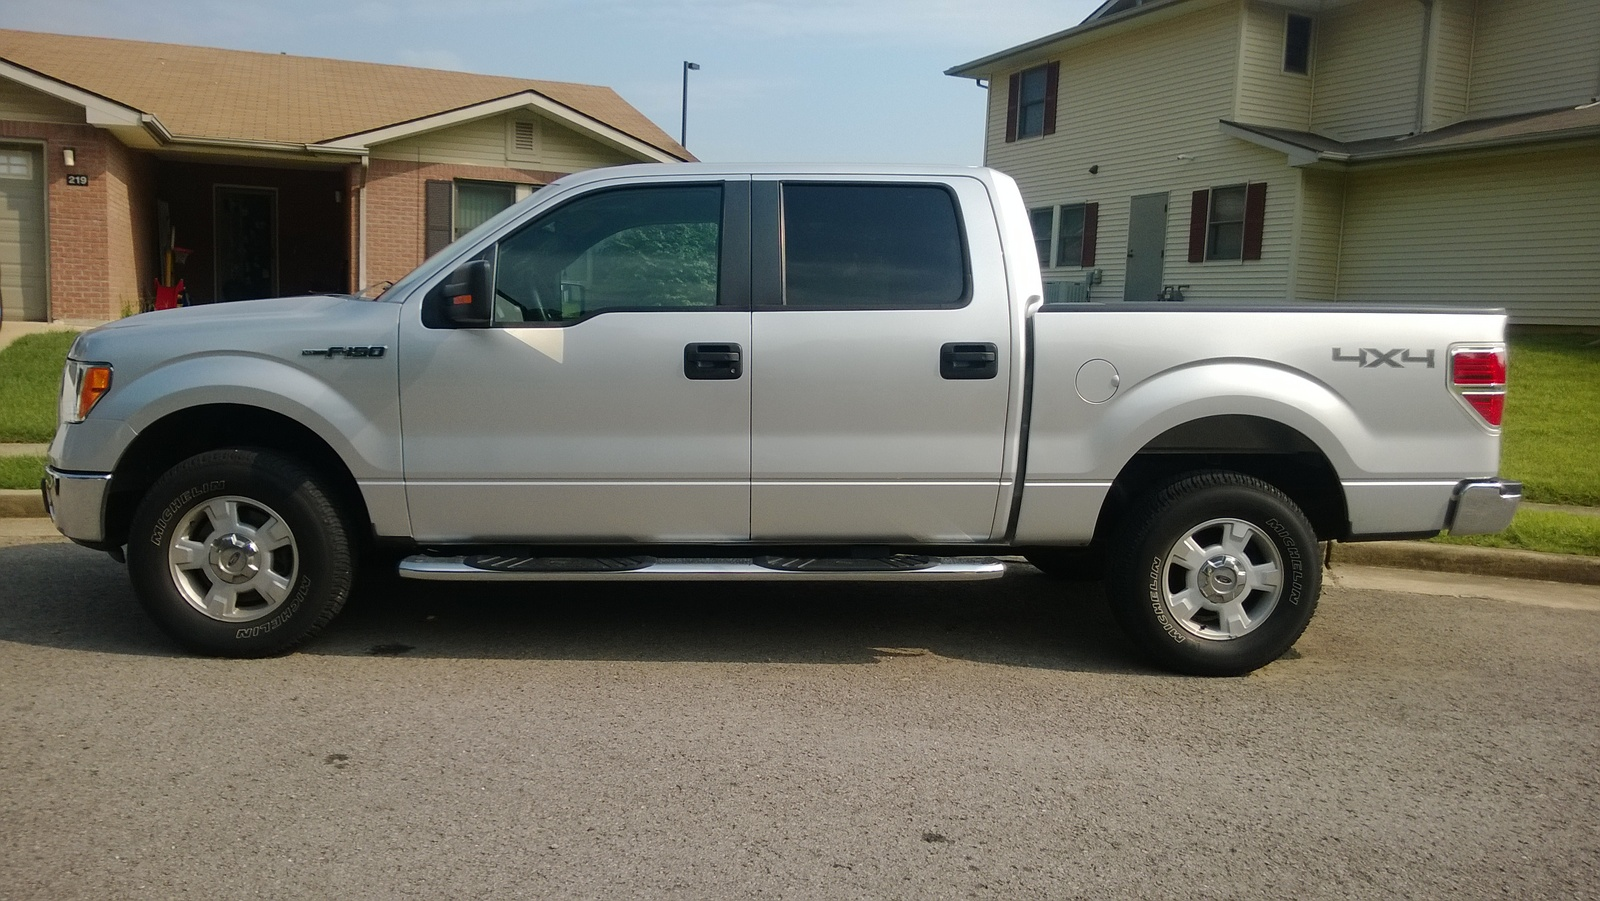 2010 f150 xlt super cab 4x4 for sale autos post. Black Bedroom Furniture Sets. Home Design Ideas